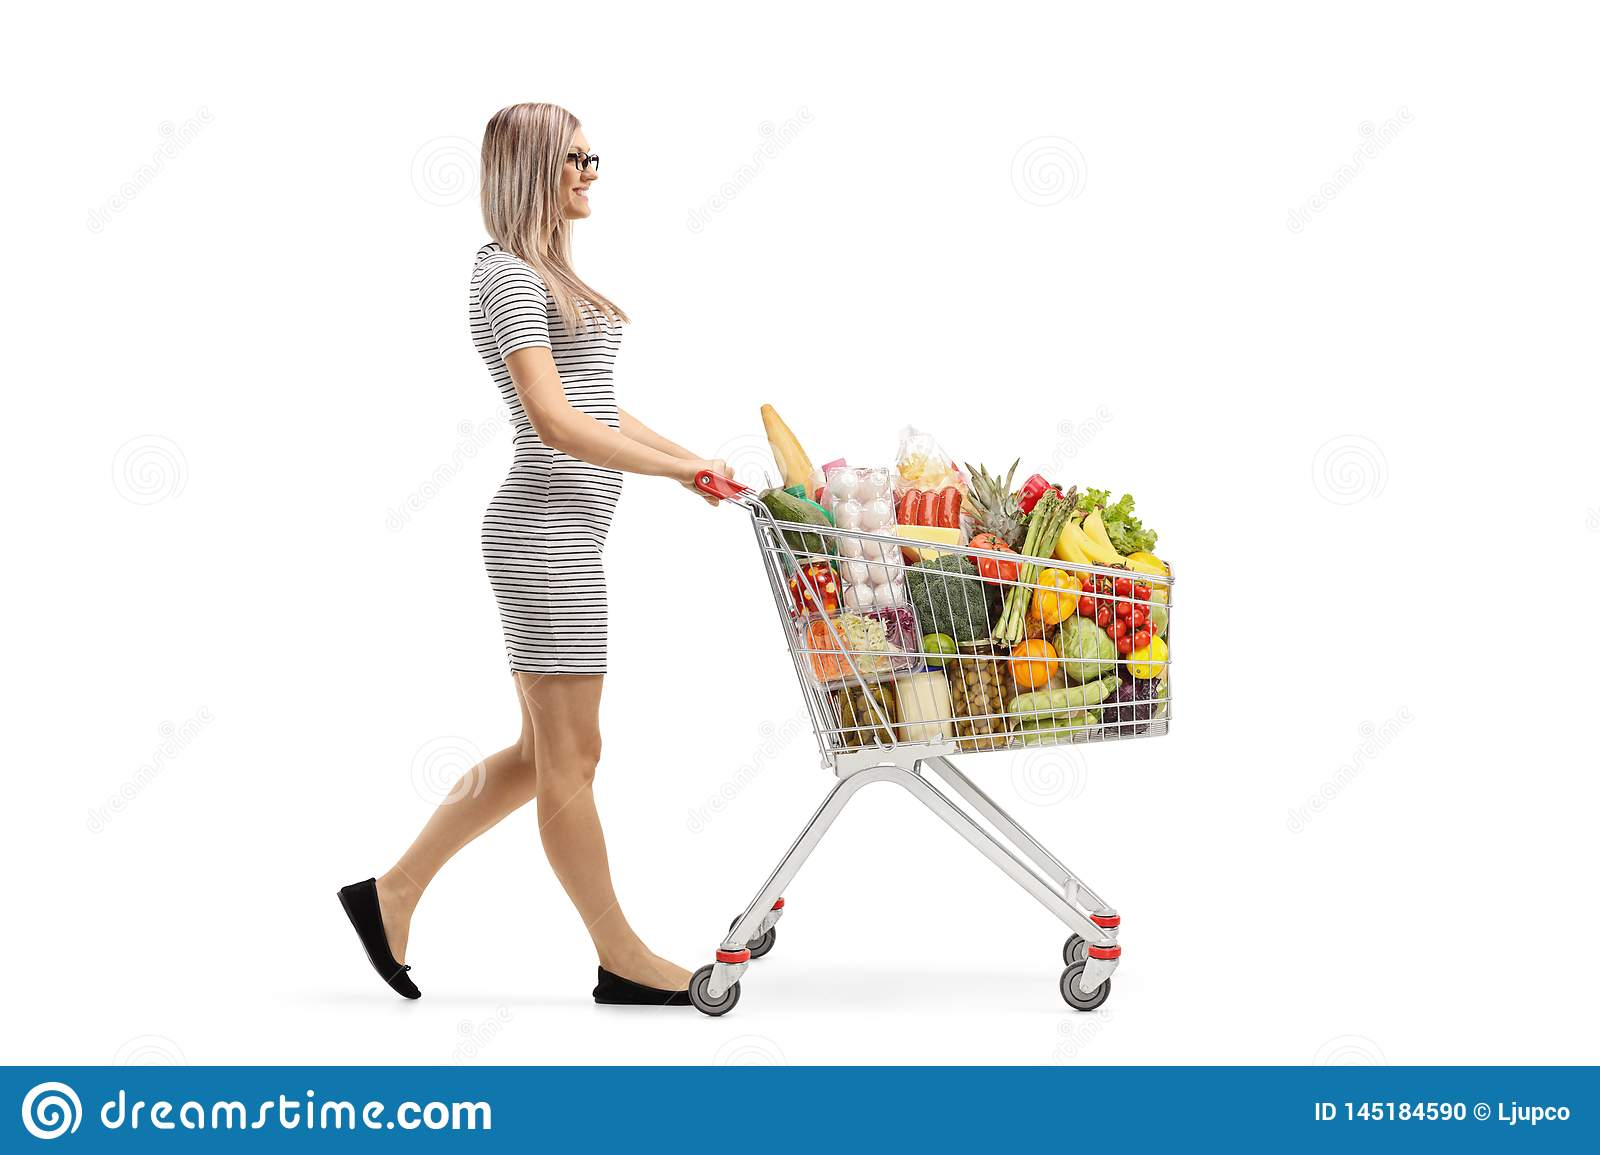 Young blond woman pushing a shopping cart with food products and walking